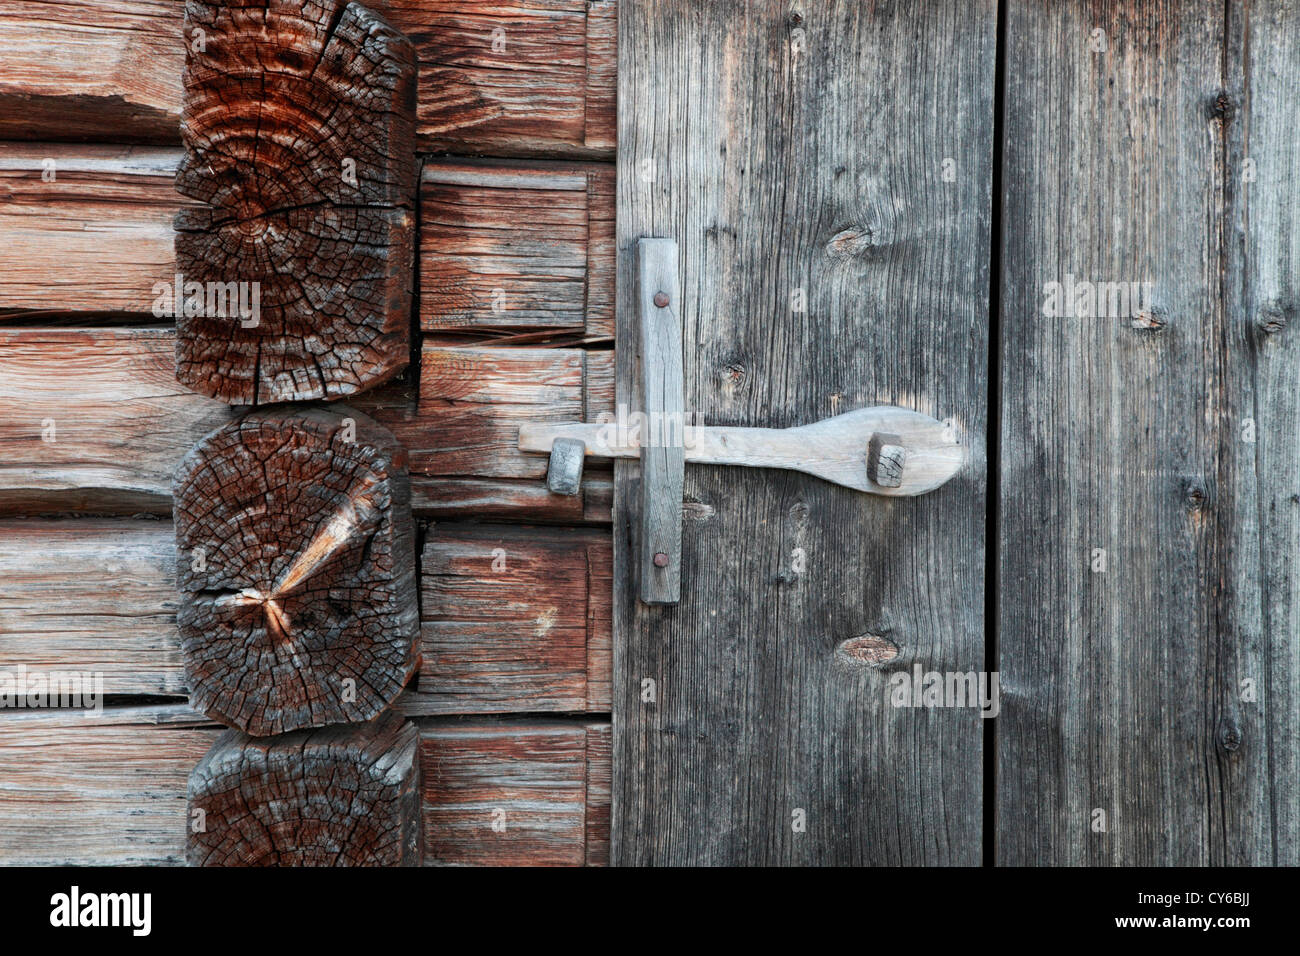 Detail of a traditional log house in Sweden: wooden bolt on a barn door. - Stock Image